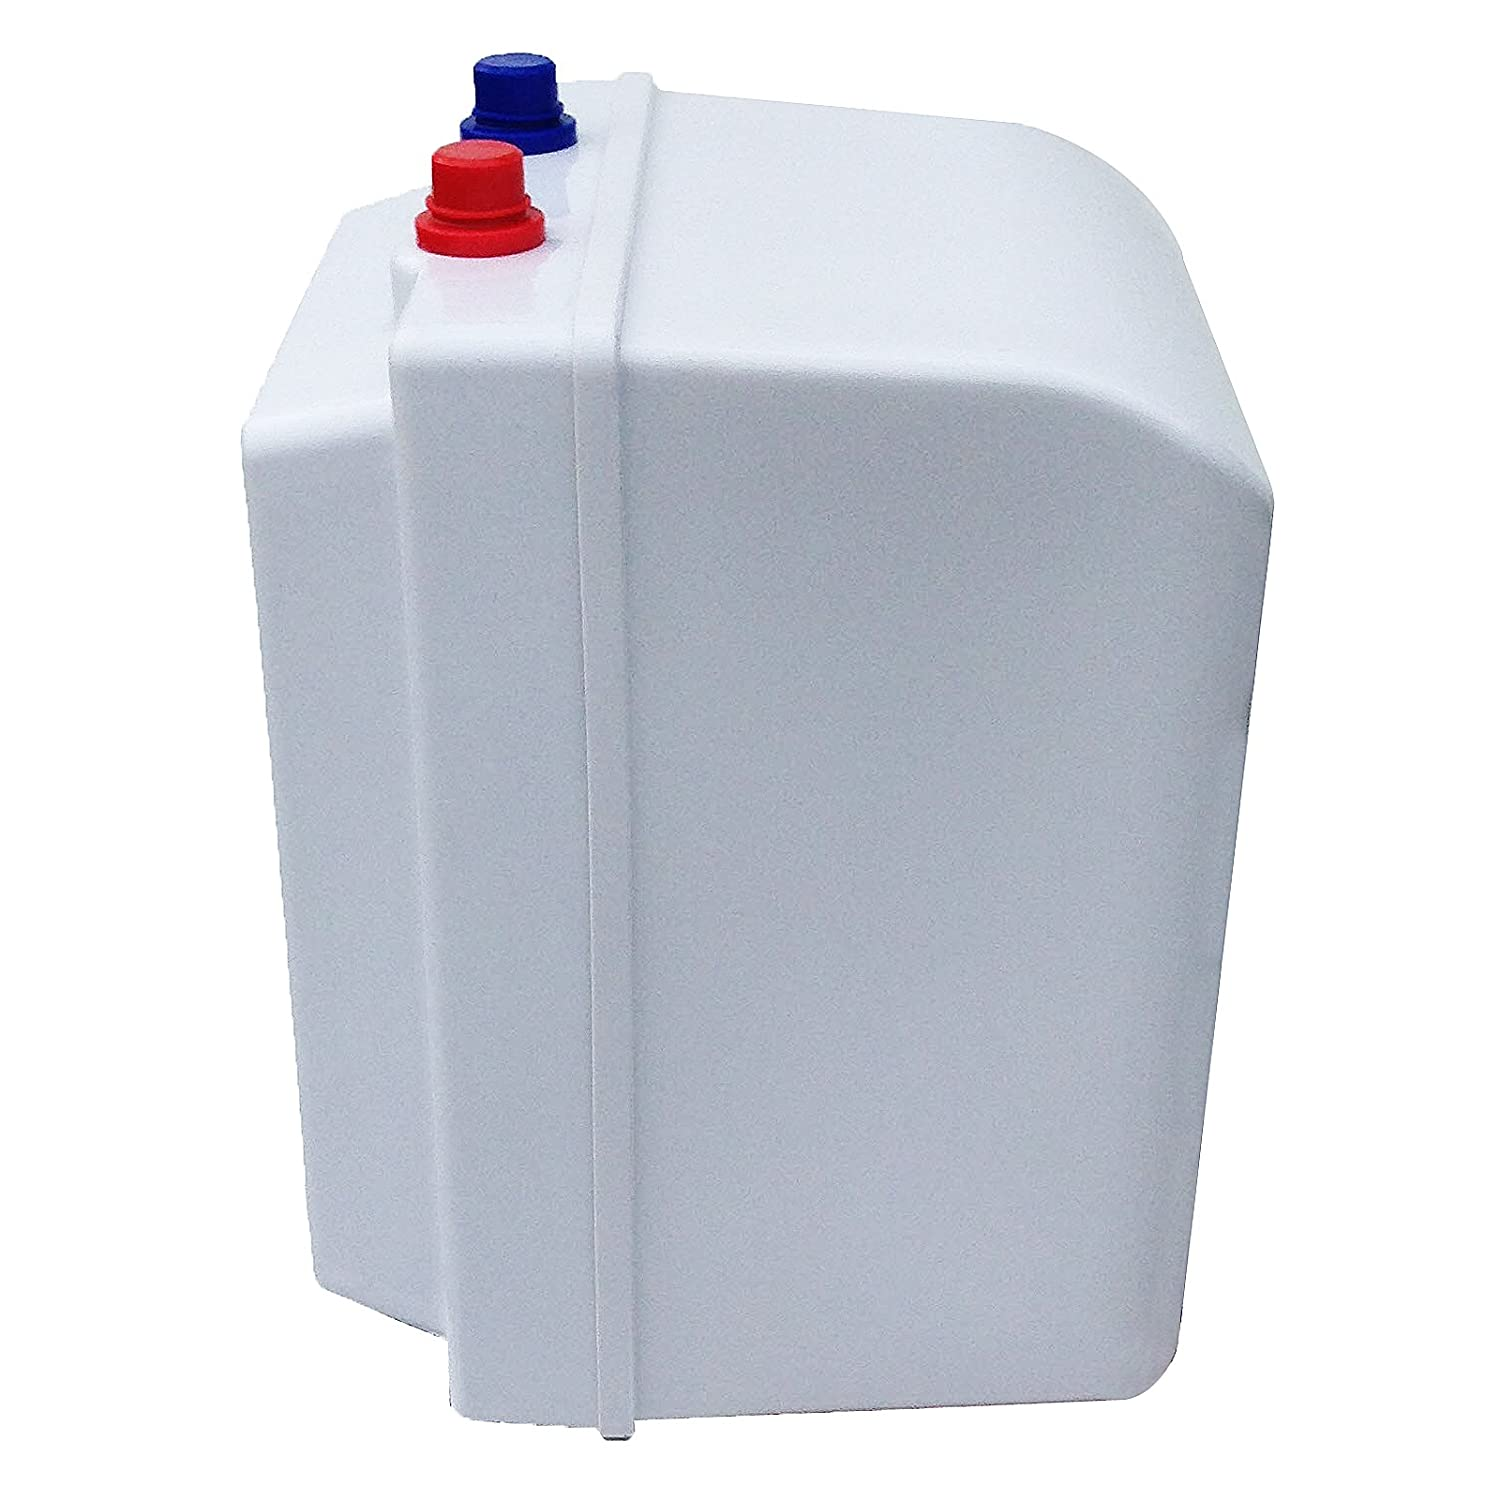 5L 2kW Under sink Water Heater by ATC - 1 to 2 sinks: Amazon.co.uk ...